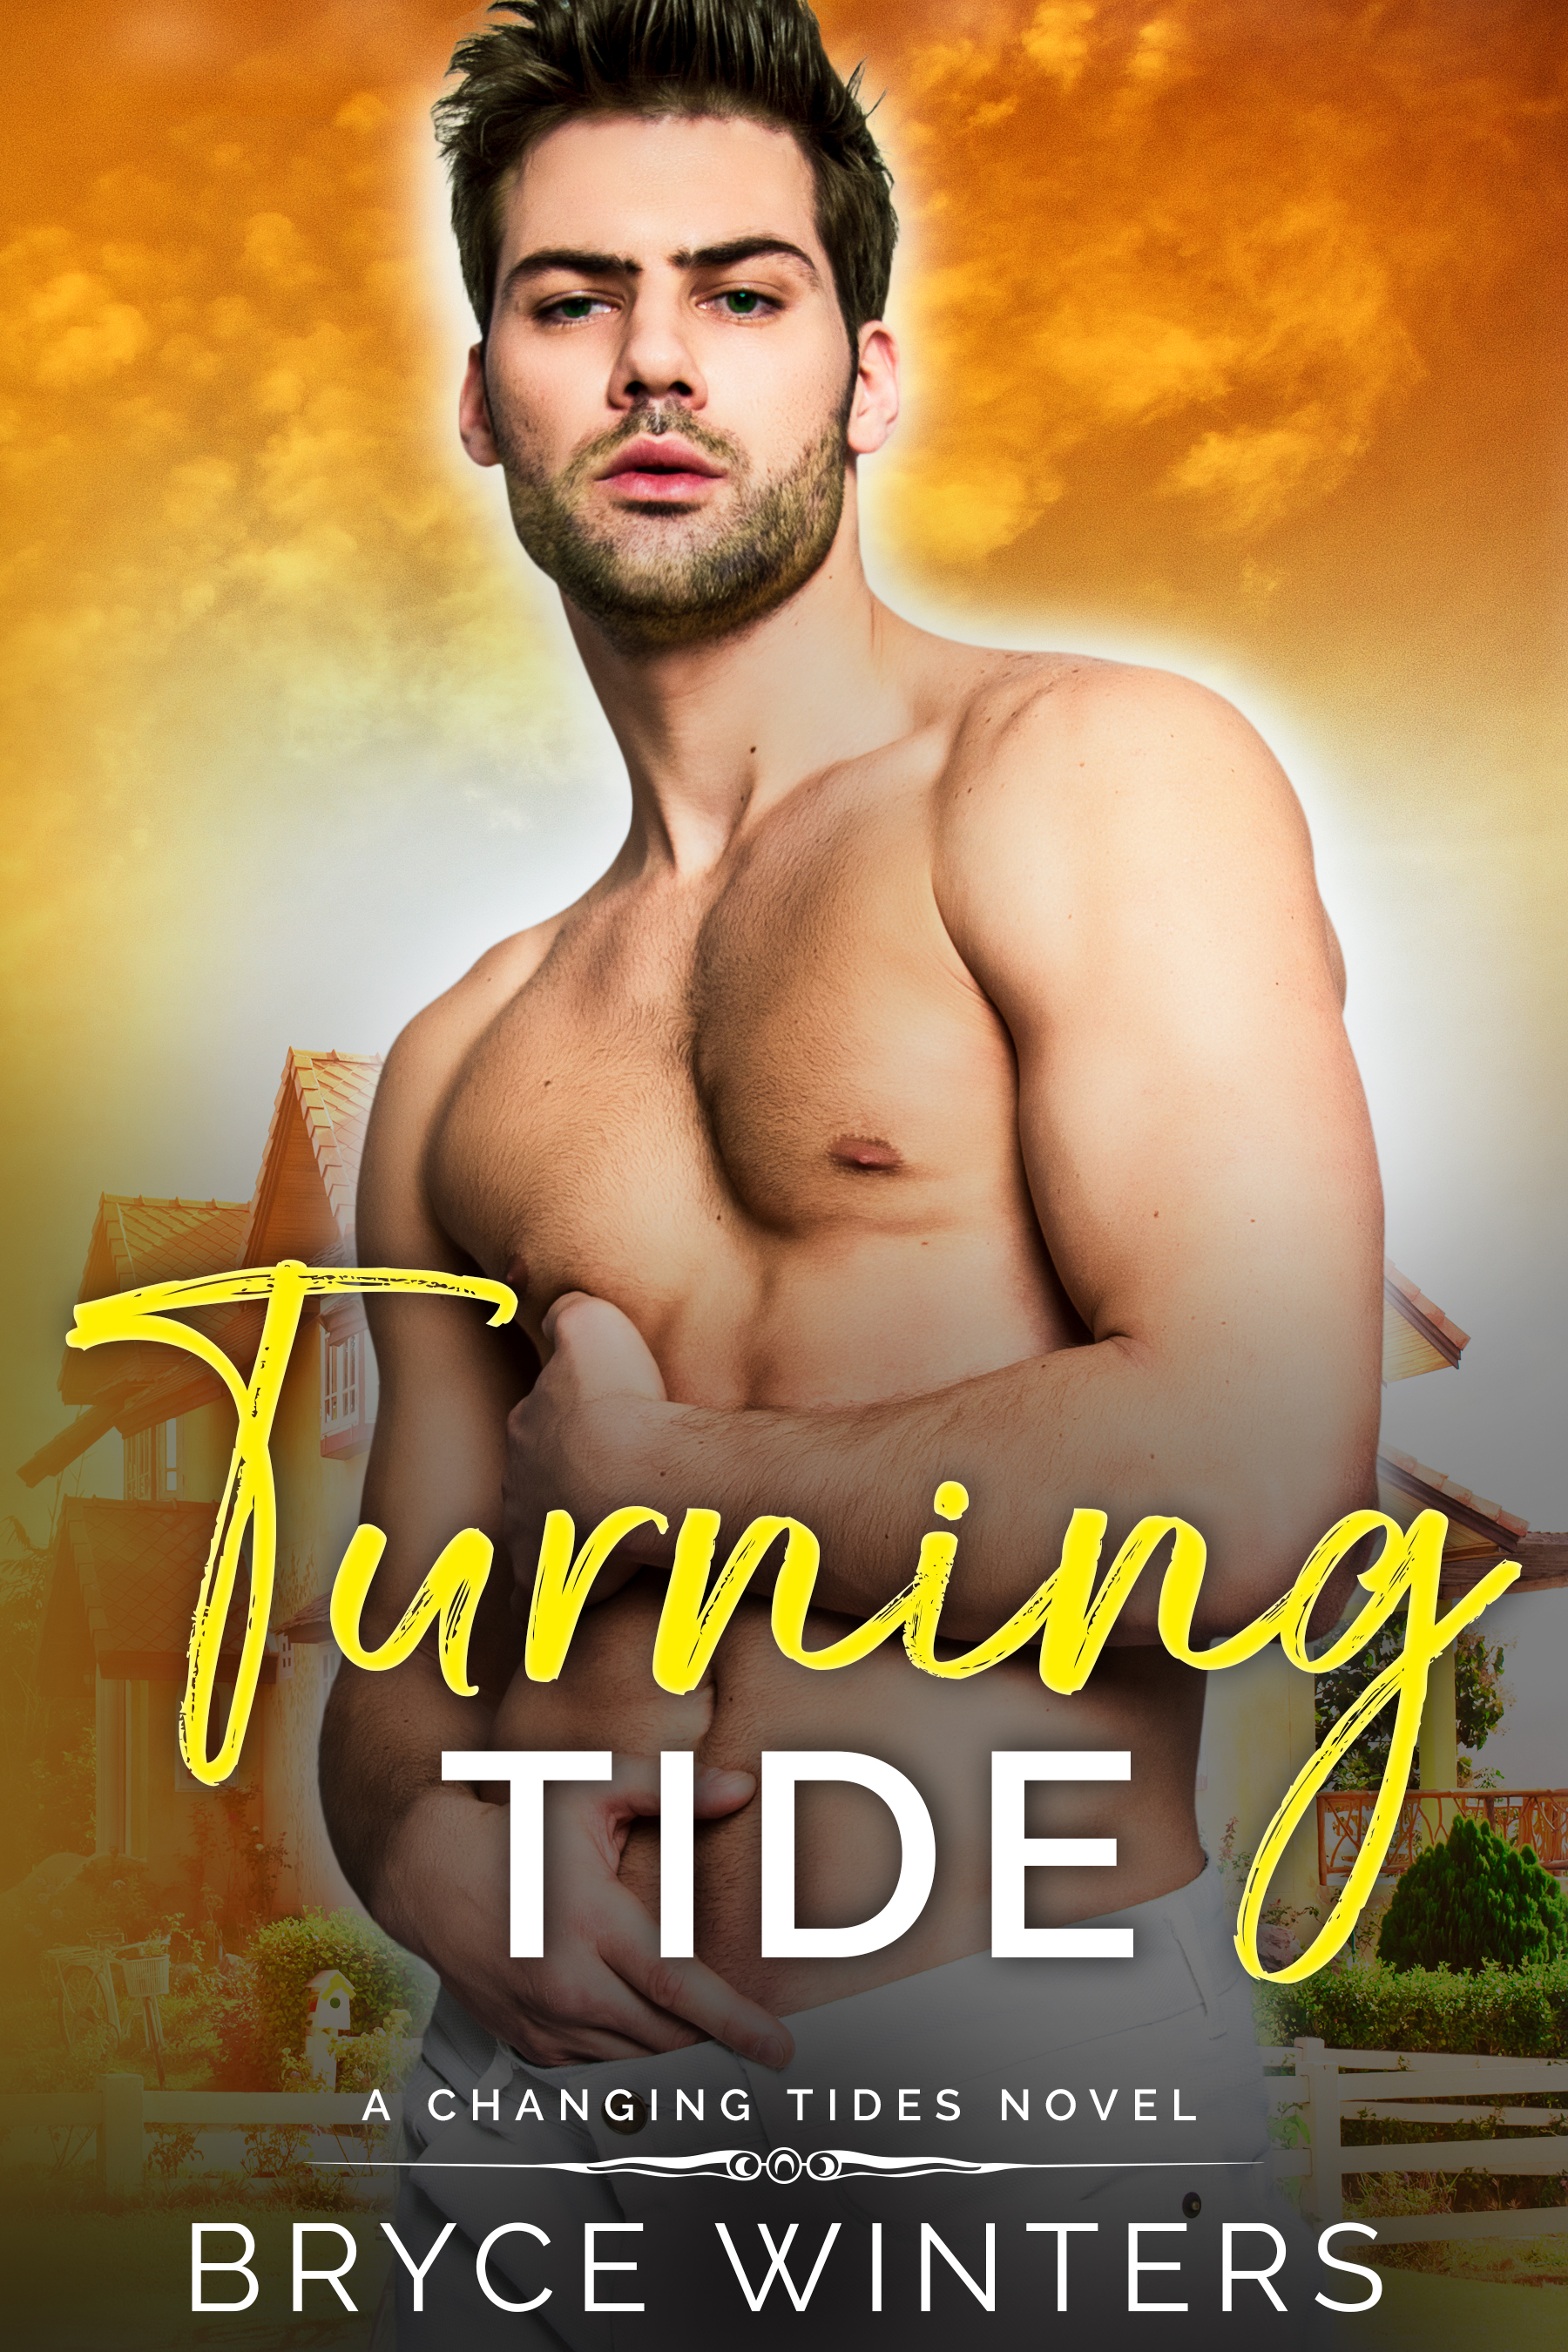 brycewinters_turningtide_ebook_v2